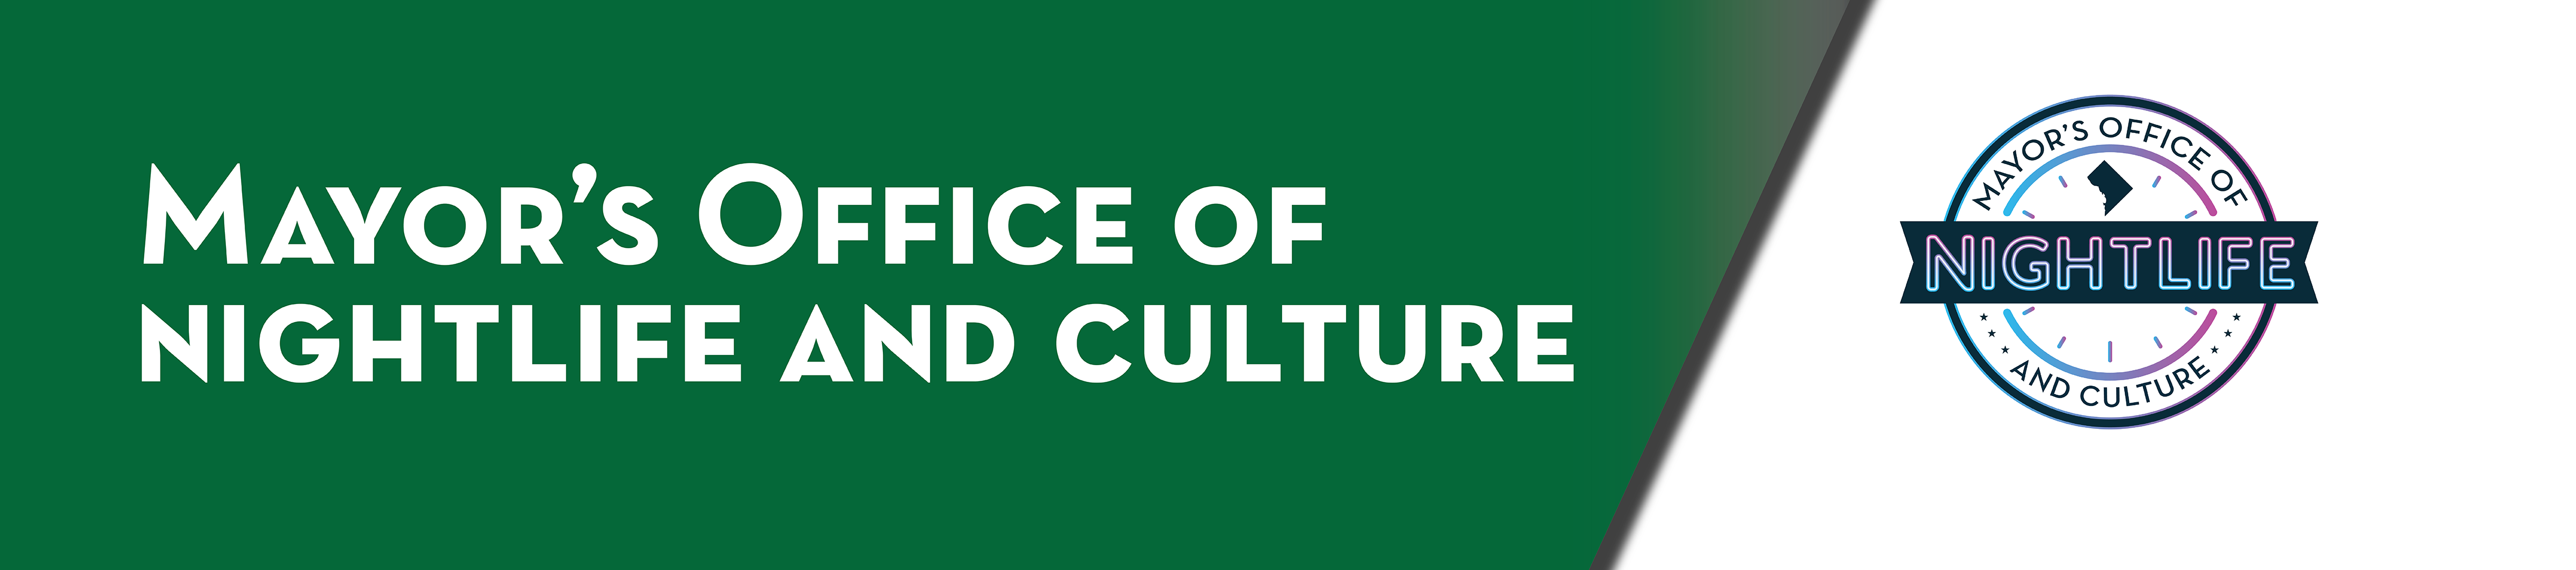 Mayor's Office of Nightlife and Culture